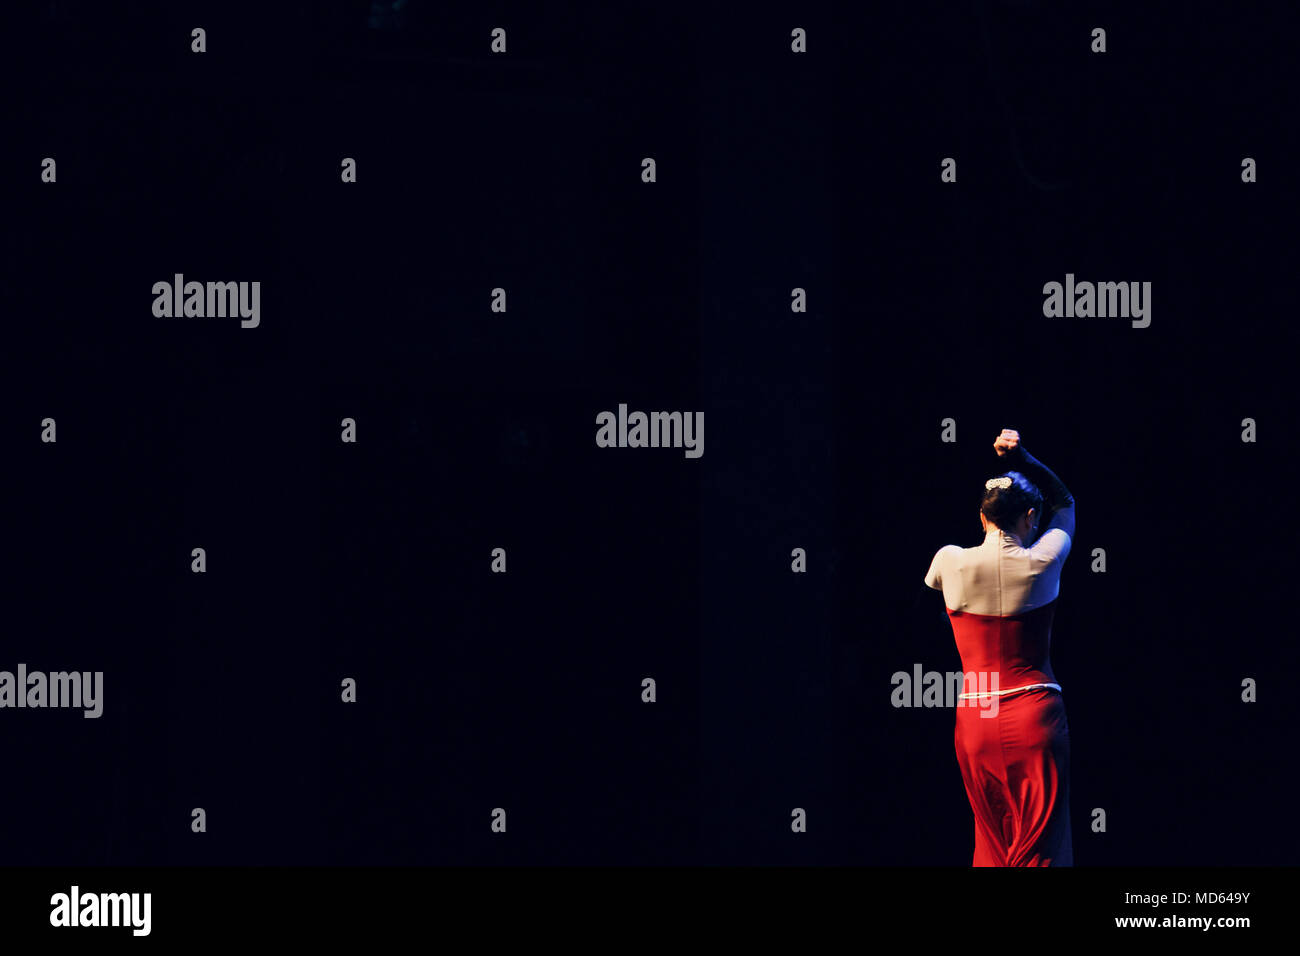 Flamenco. Performance on stage. - Stock Image